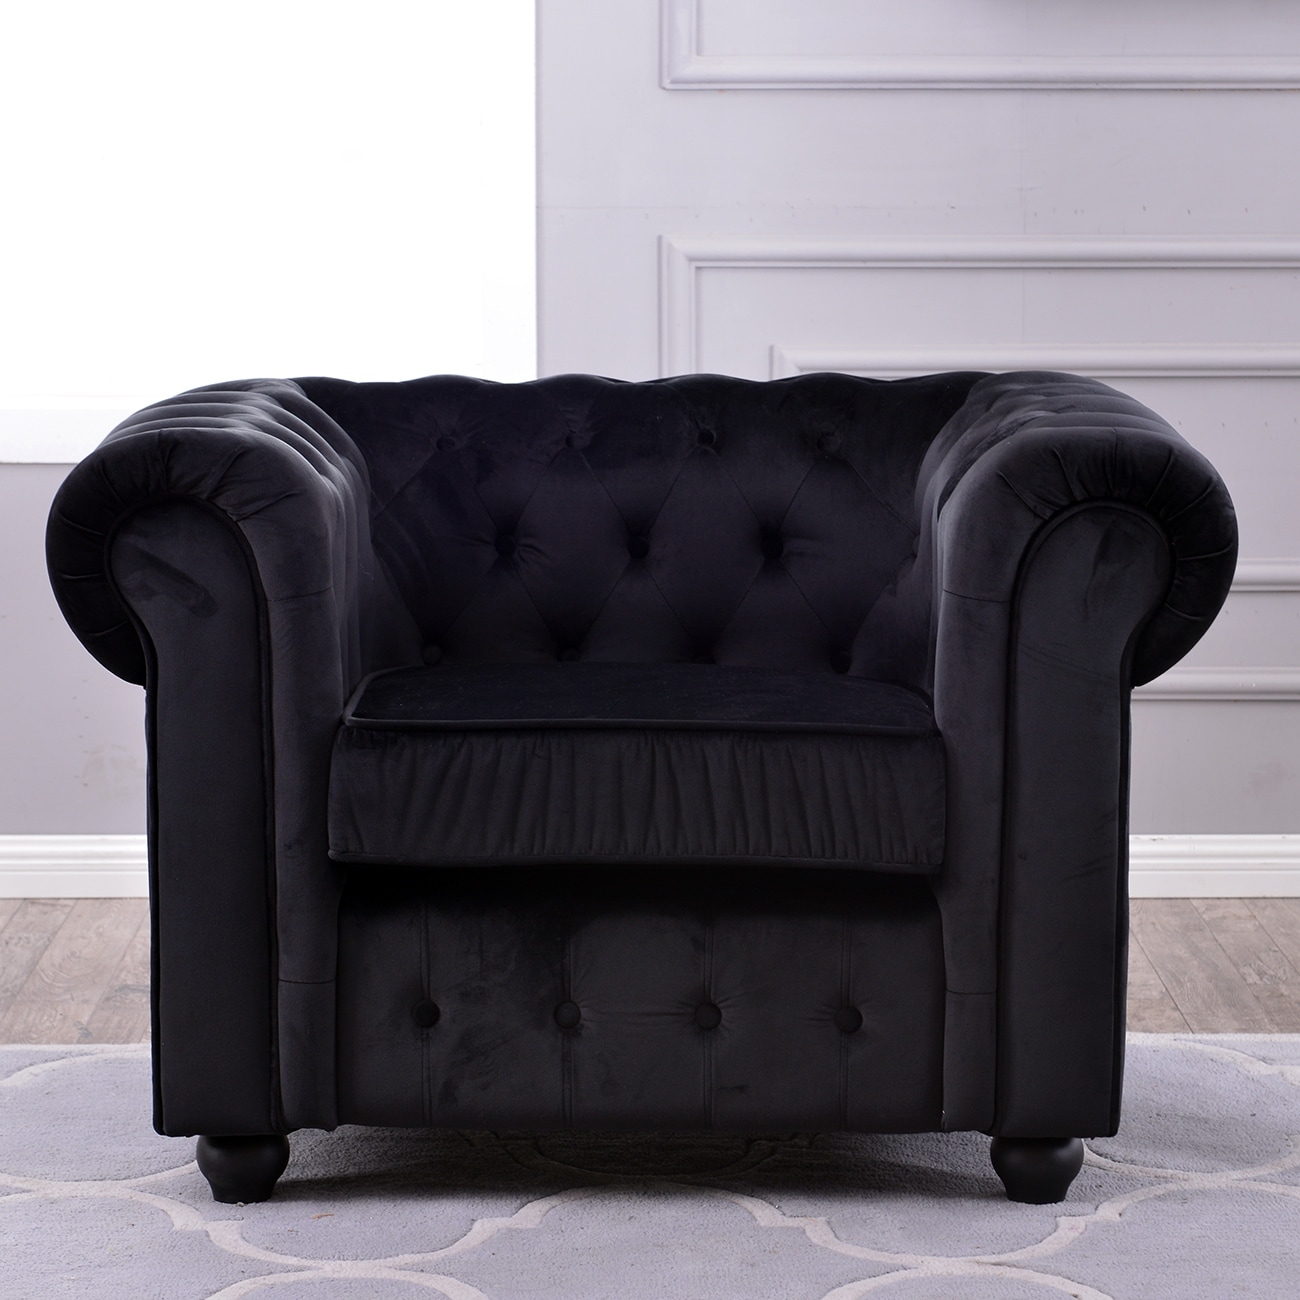 Shop Belleze Classic Scroll Arm Large Living Room Accent Chair Ultra Soft  Tufted Velvet, Black   Free Shipping Today   Overstock.com   17833236